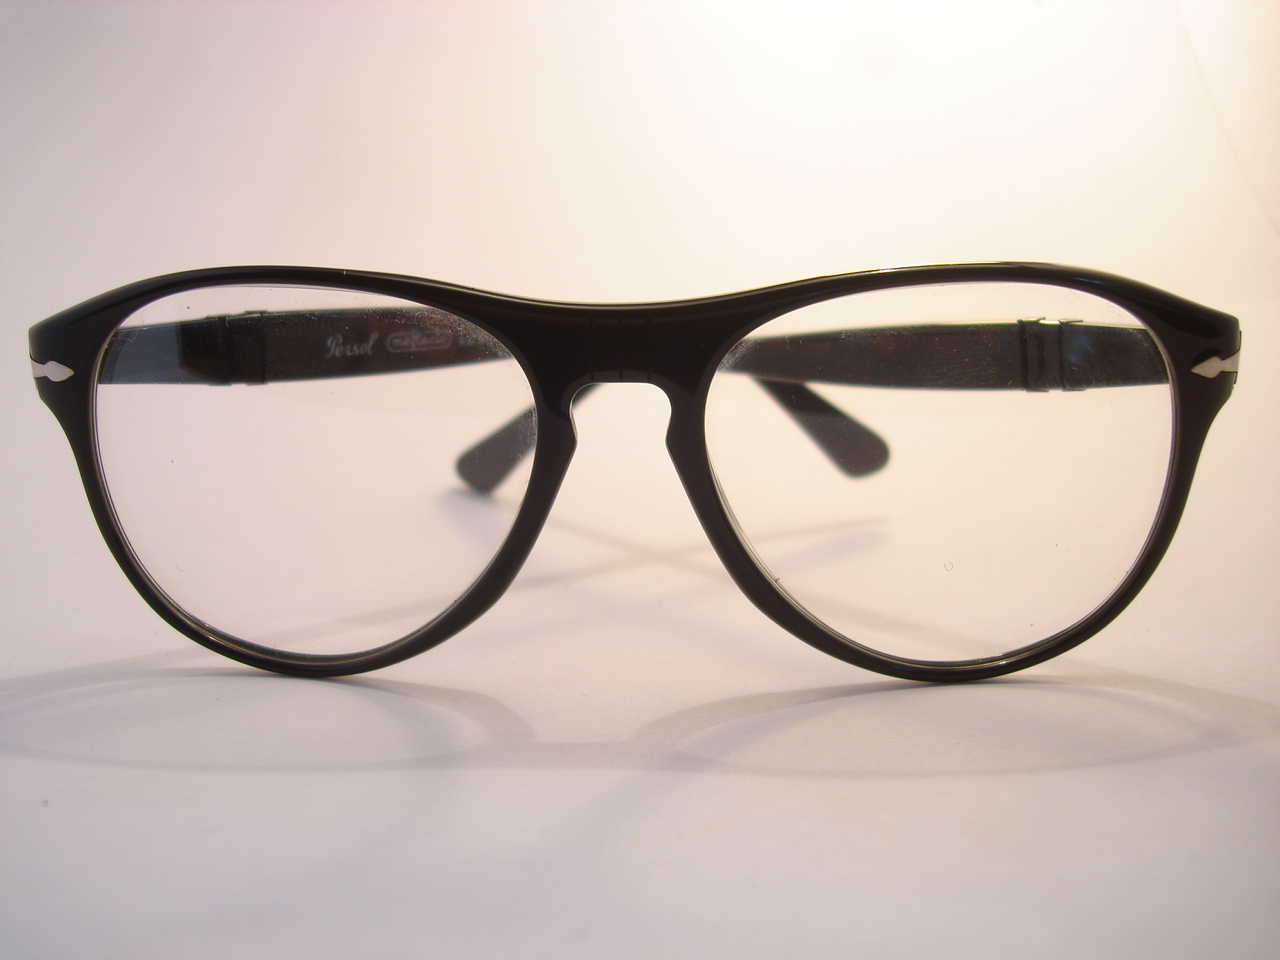 Frame Glasses Made In Italy : theothersideofthepillow: vintage PERSOL by RATTI 69245/58 ...